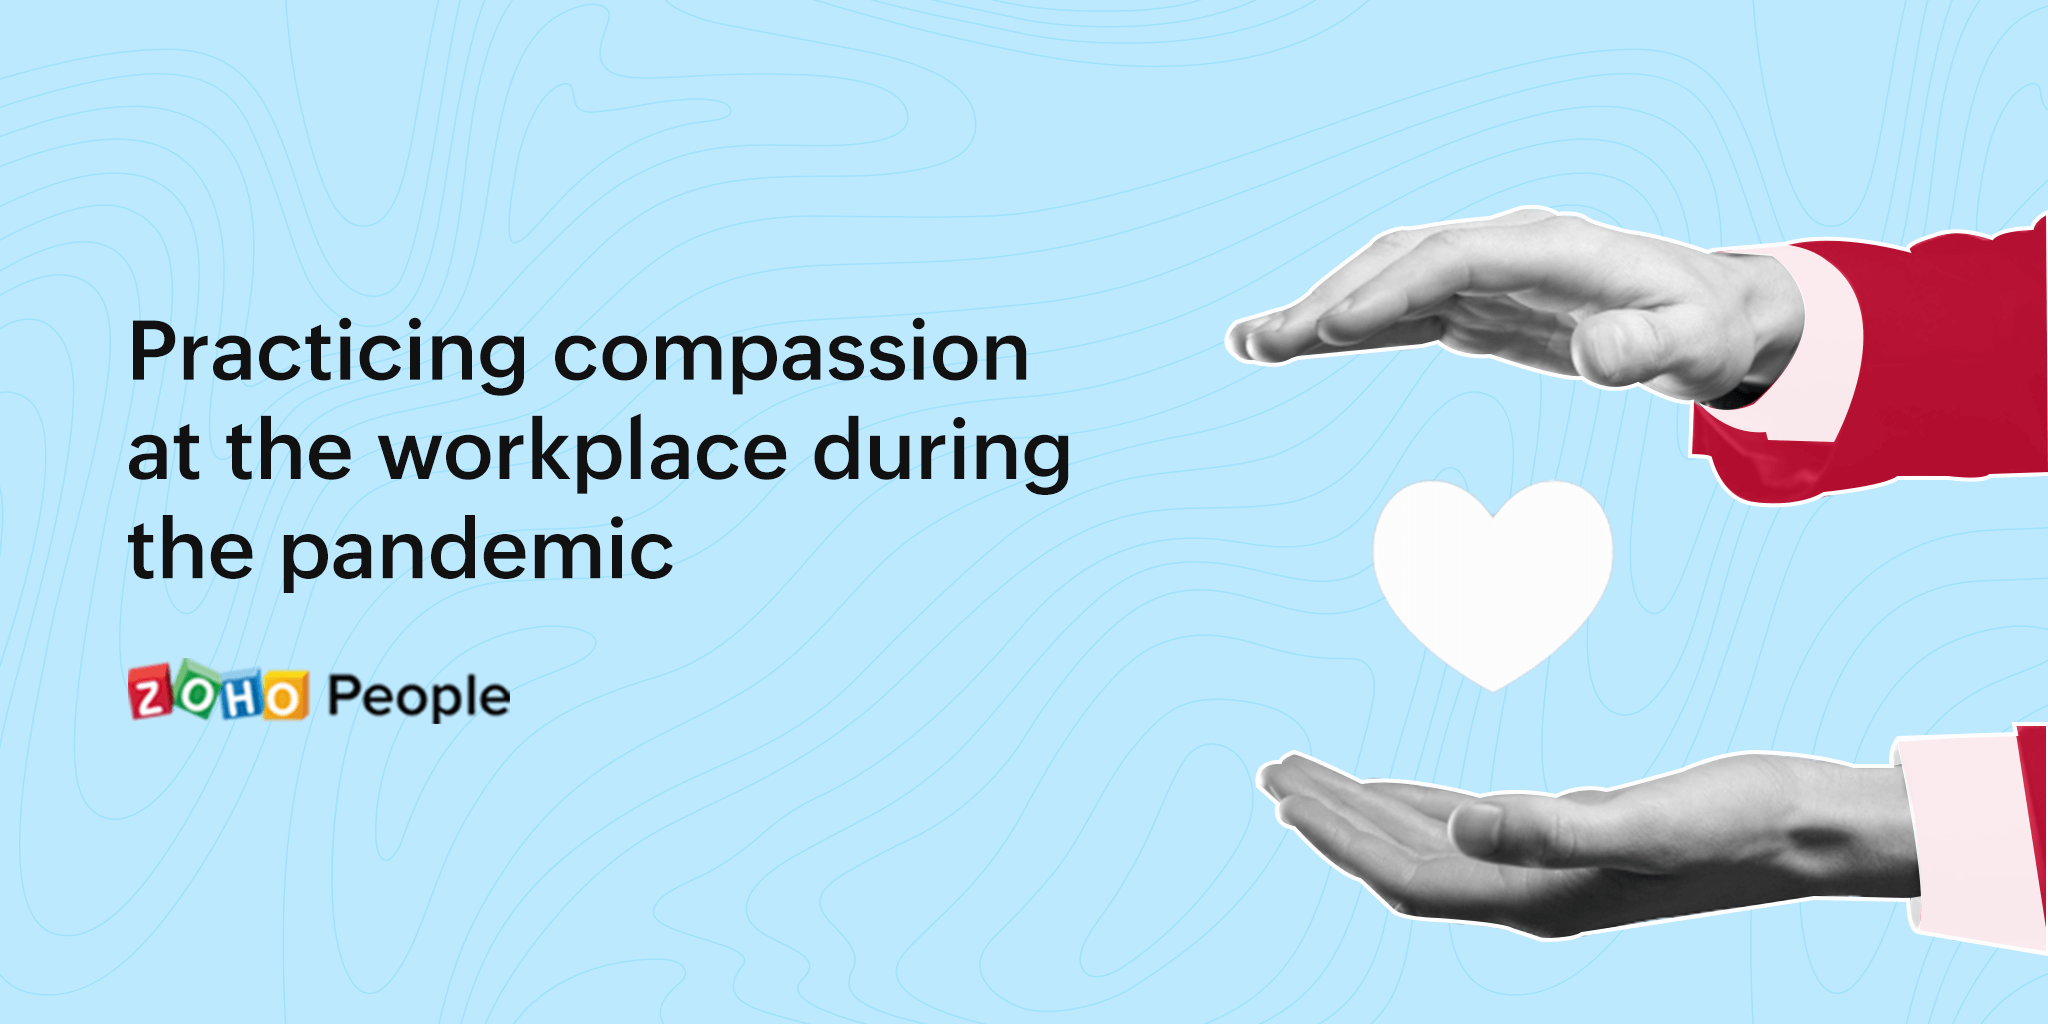 Fostering compassion at the workplace